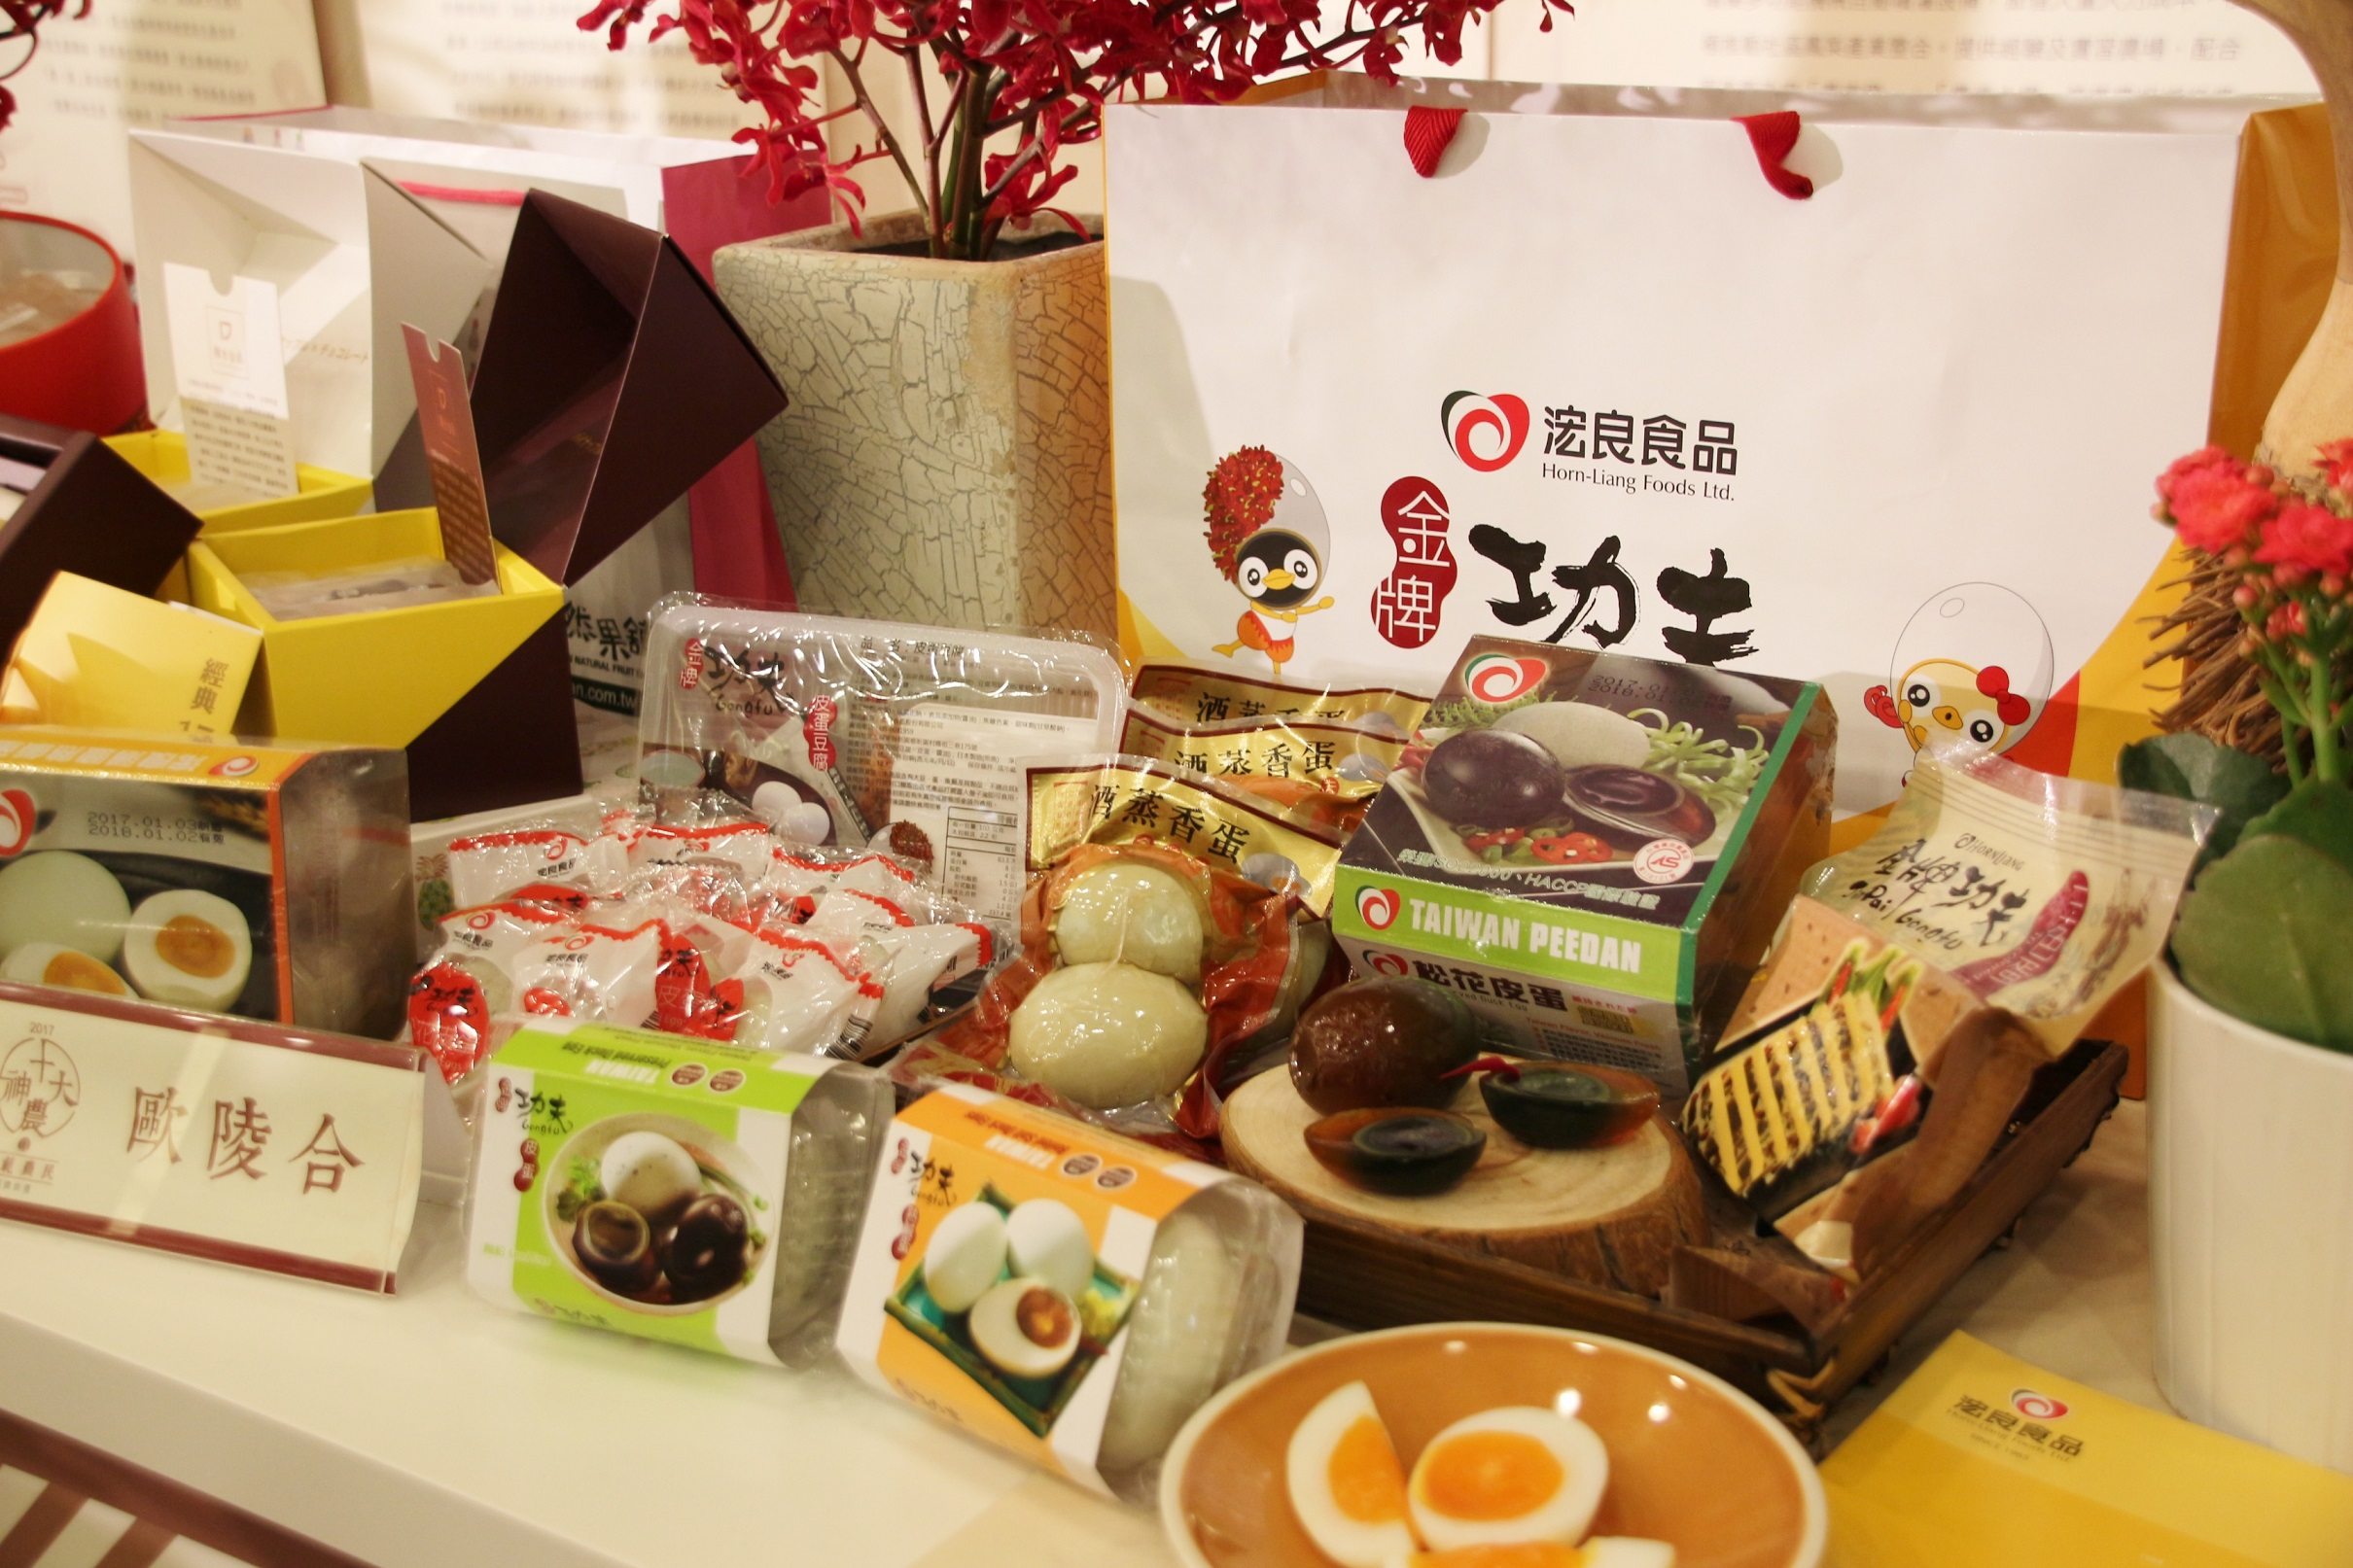 Horn-Liang Foods displays its processed egg products at the ceremony. (Taiwan News Photo by Sophia Yang)